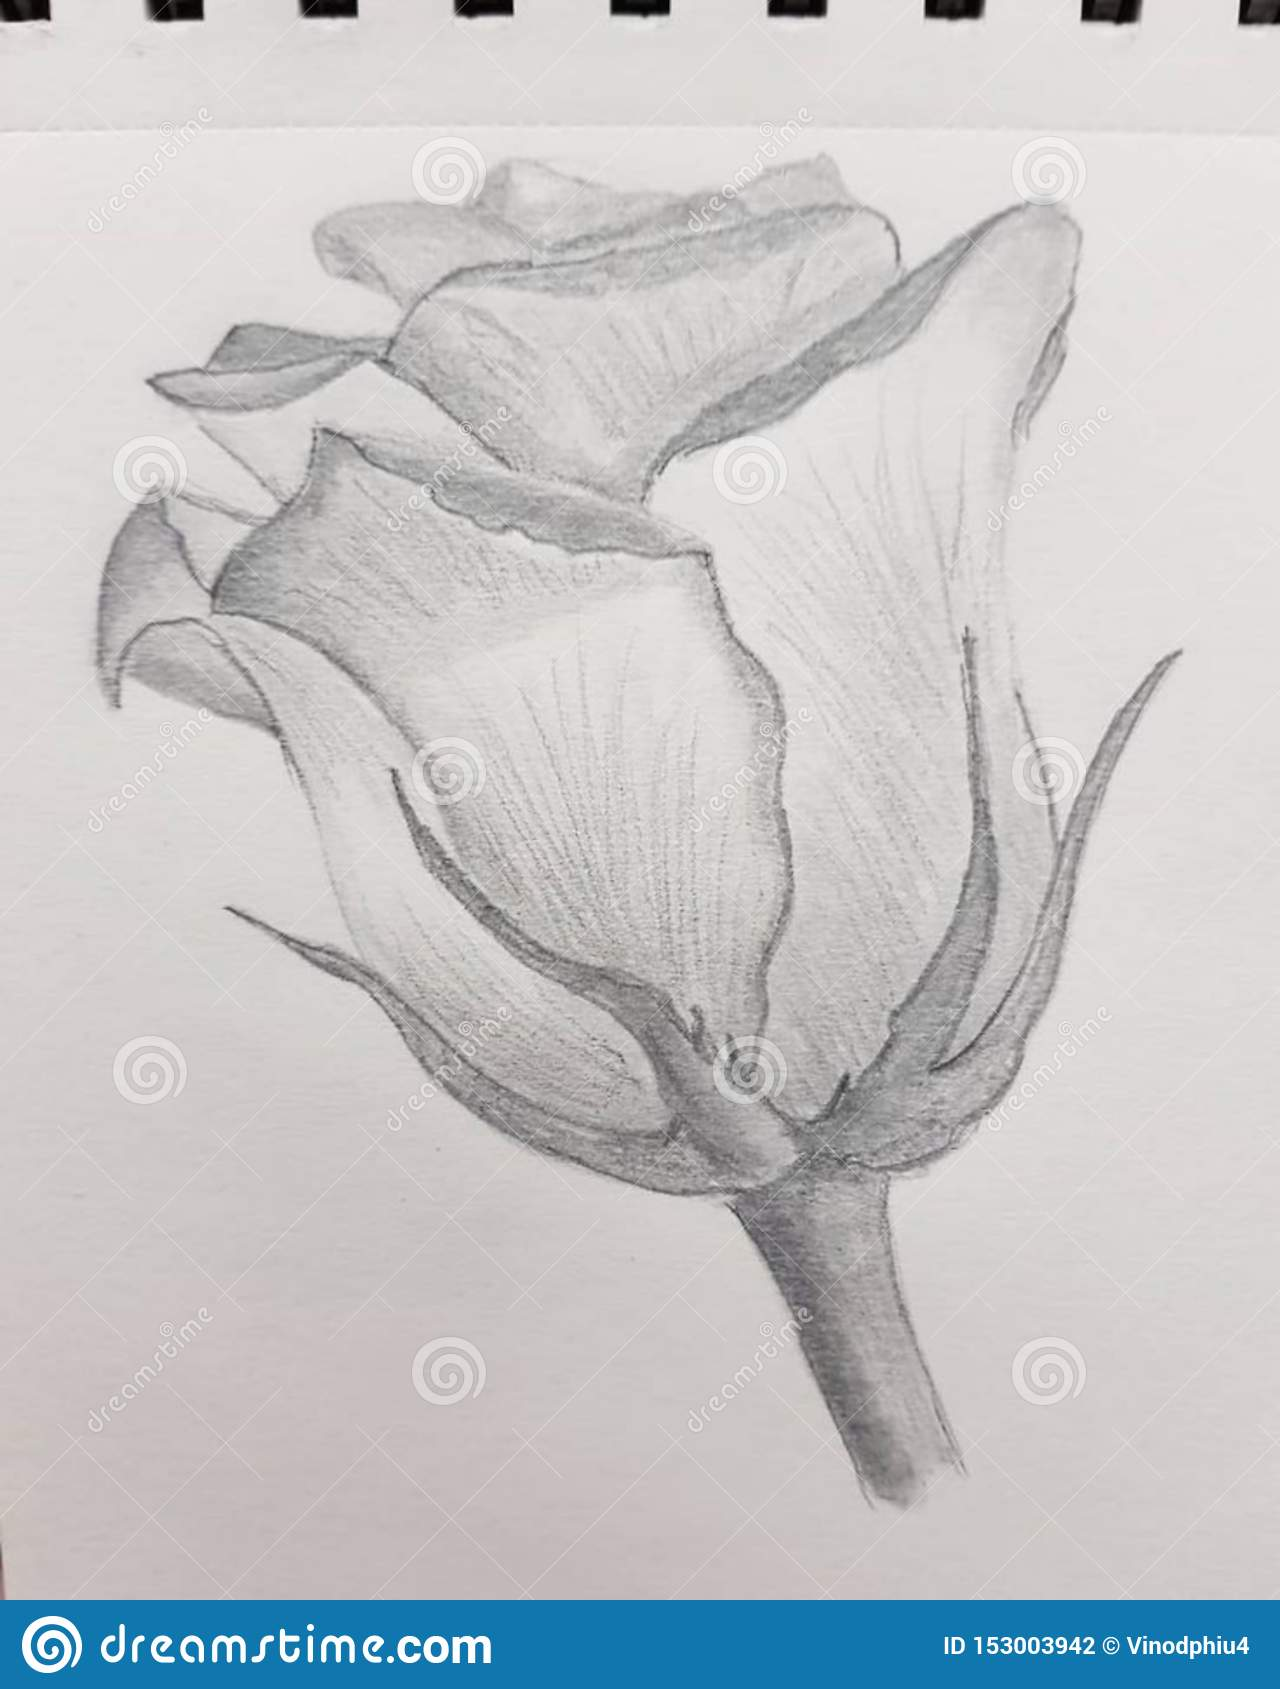 sketch Flower, Pencil Art of Flower